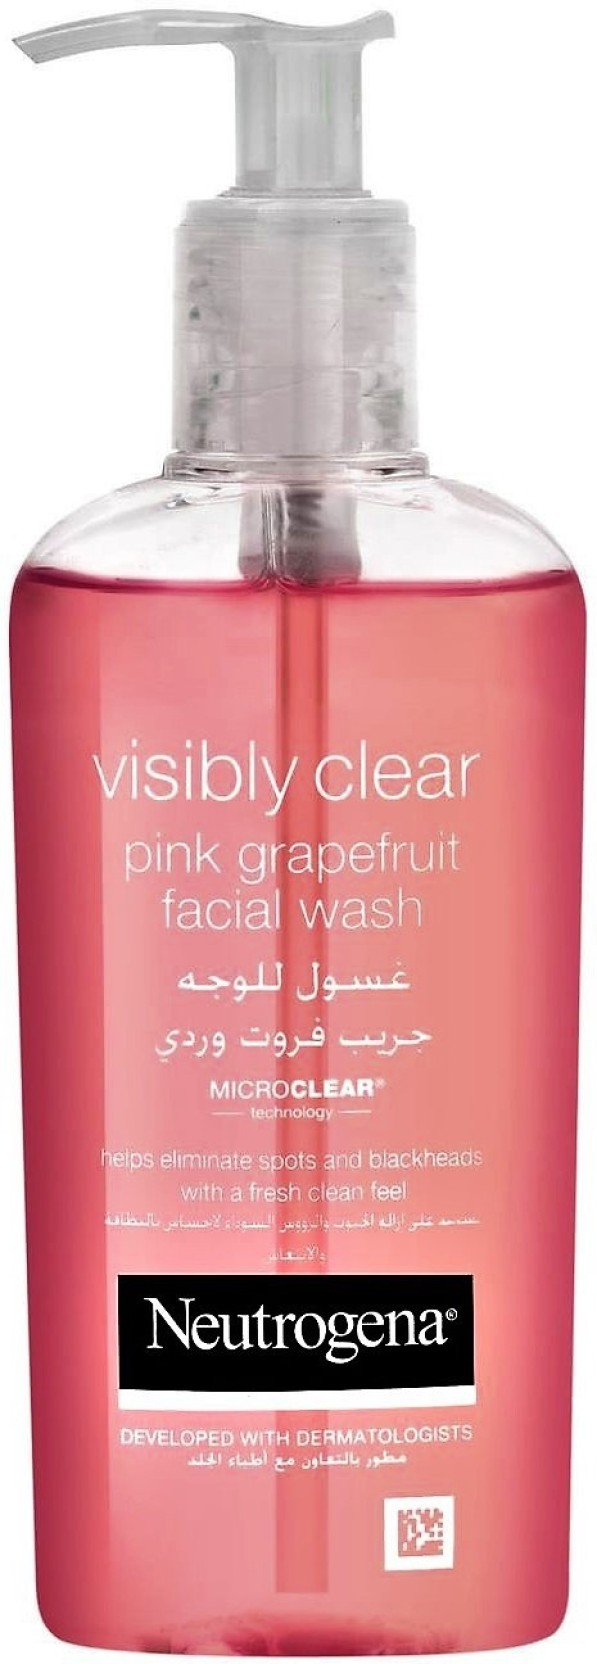 Neutrogena Pink Grapefruit Facial Wash Imported Made In Greece